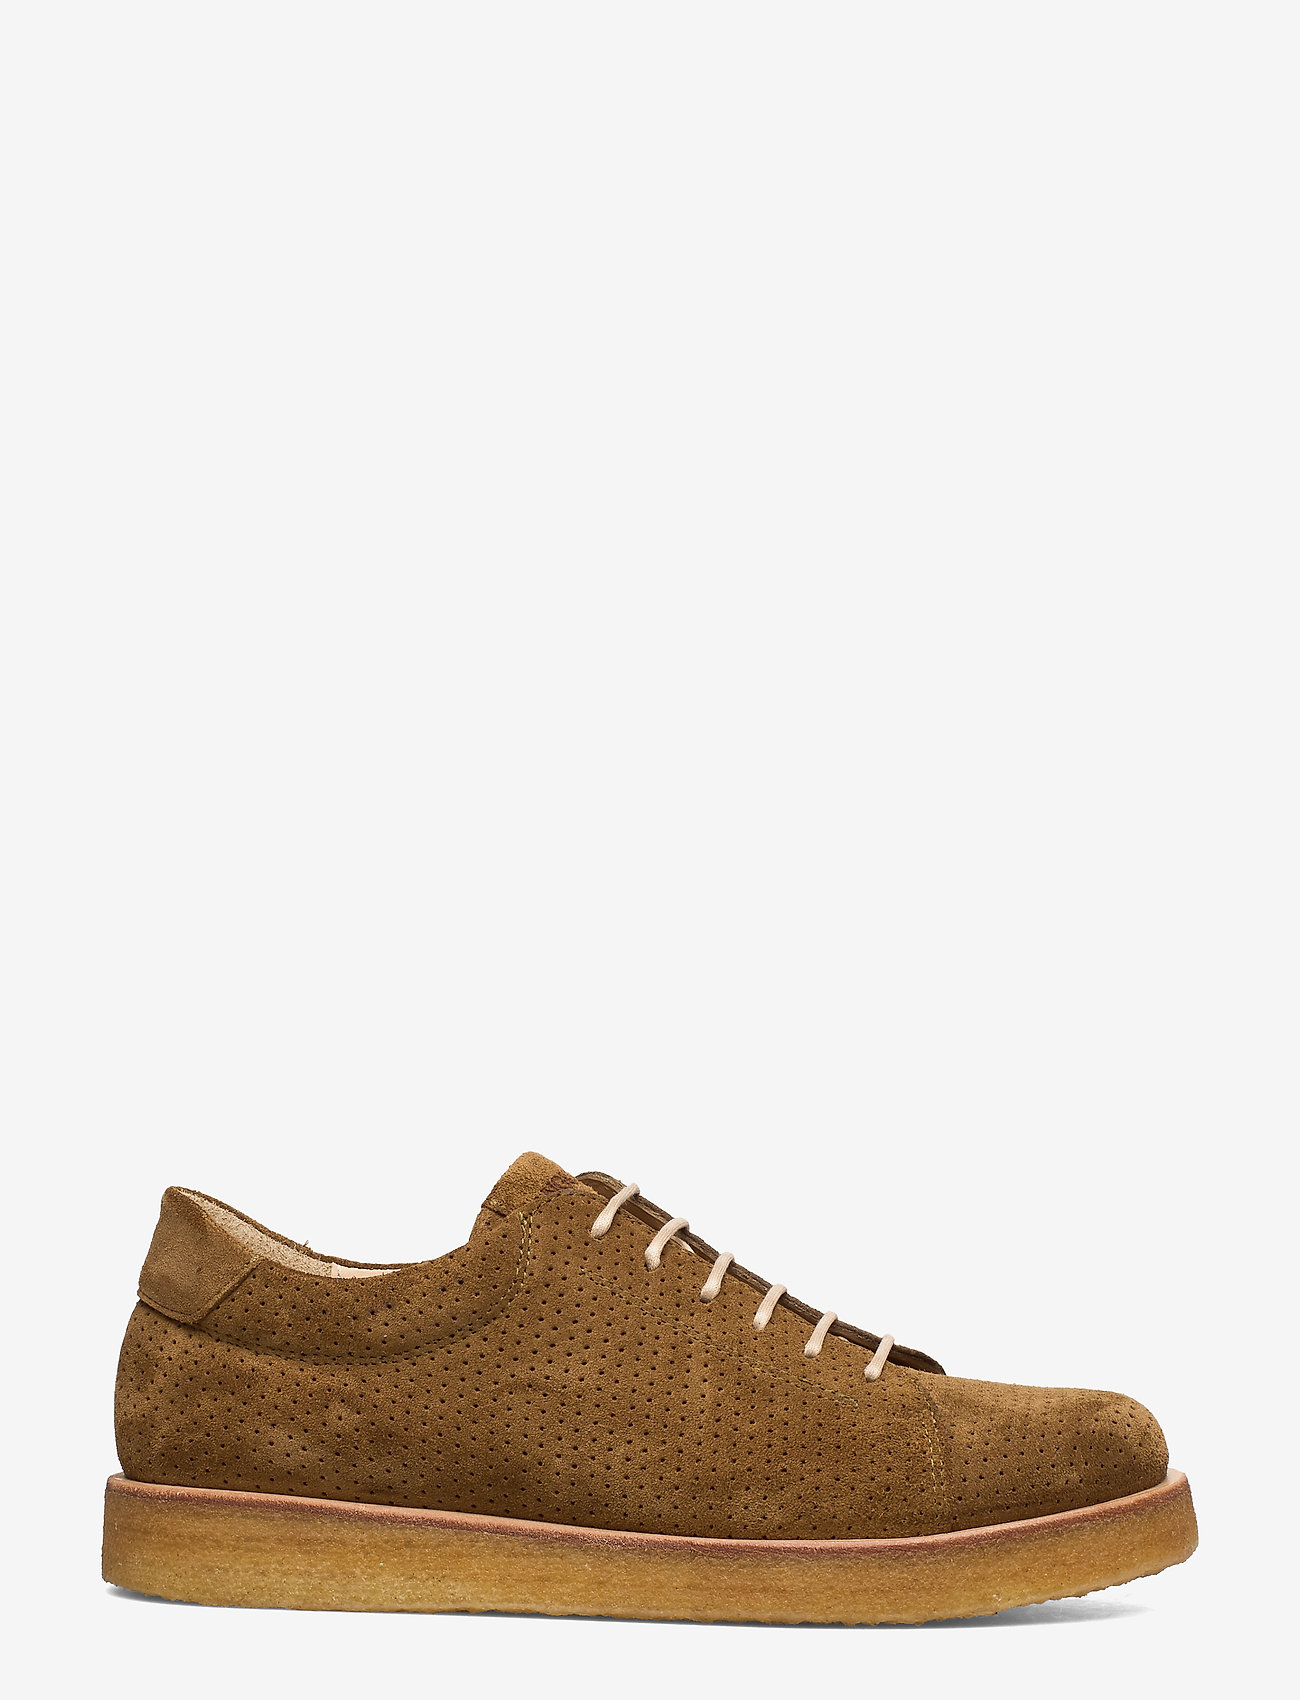 ANGULUS - Shoes - flat - with lace - snøresko - 2209 mustard - 1